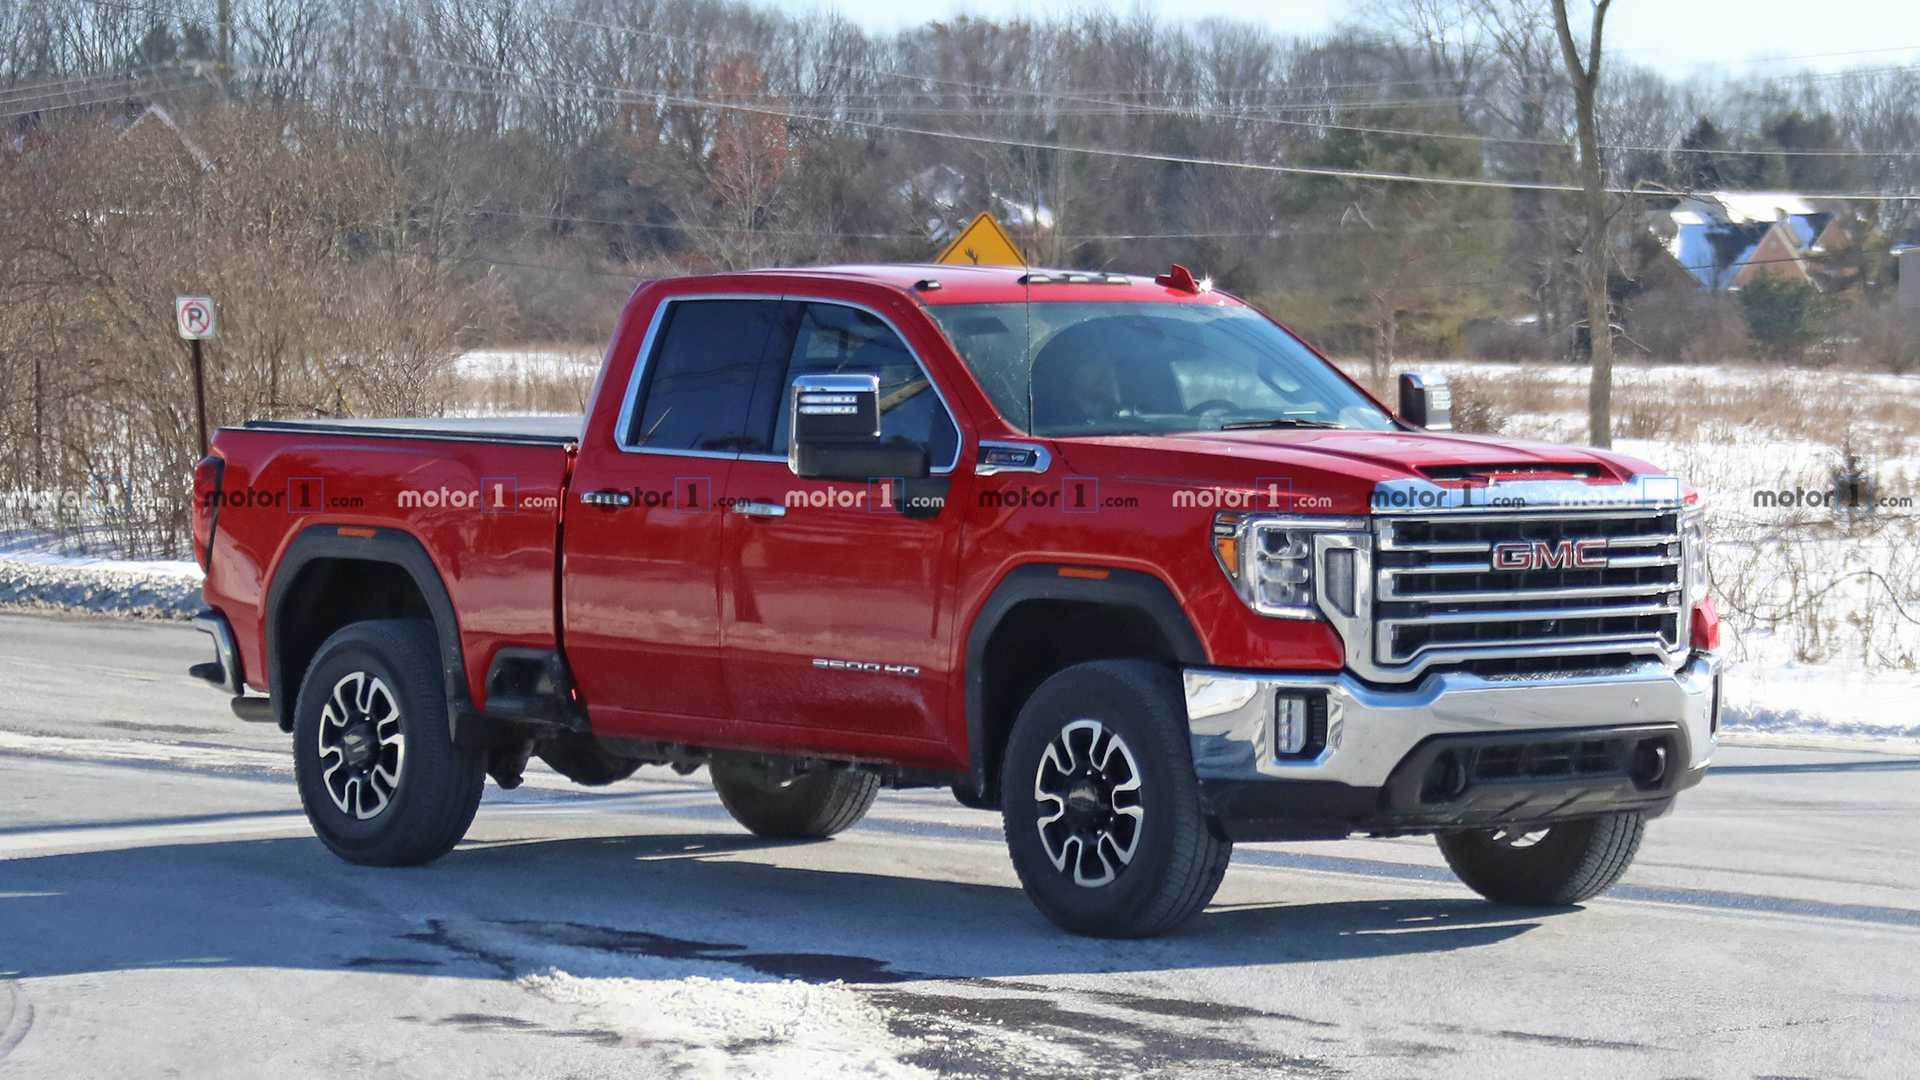 76 Best 2020 GMC Sierra Hd Price Design And Review